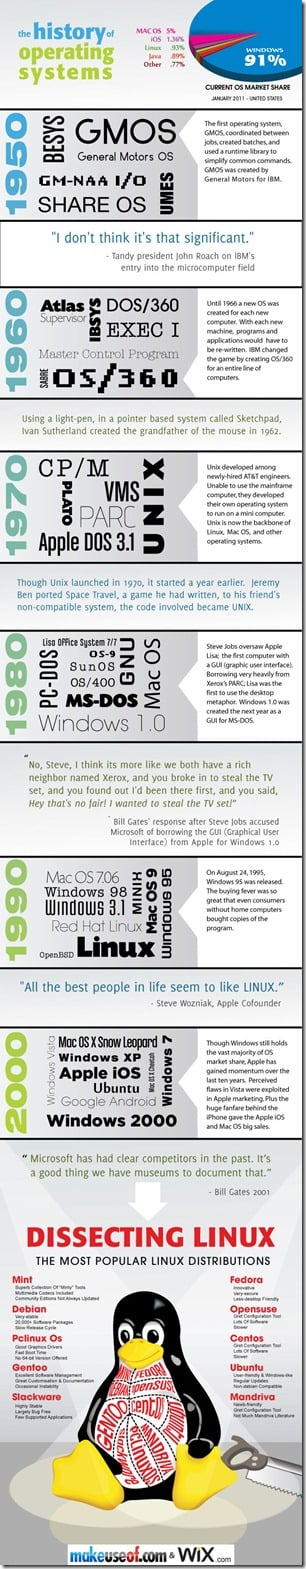 Infographic: History of Operating Systems